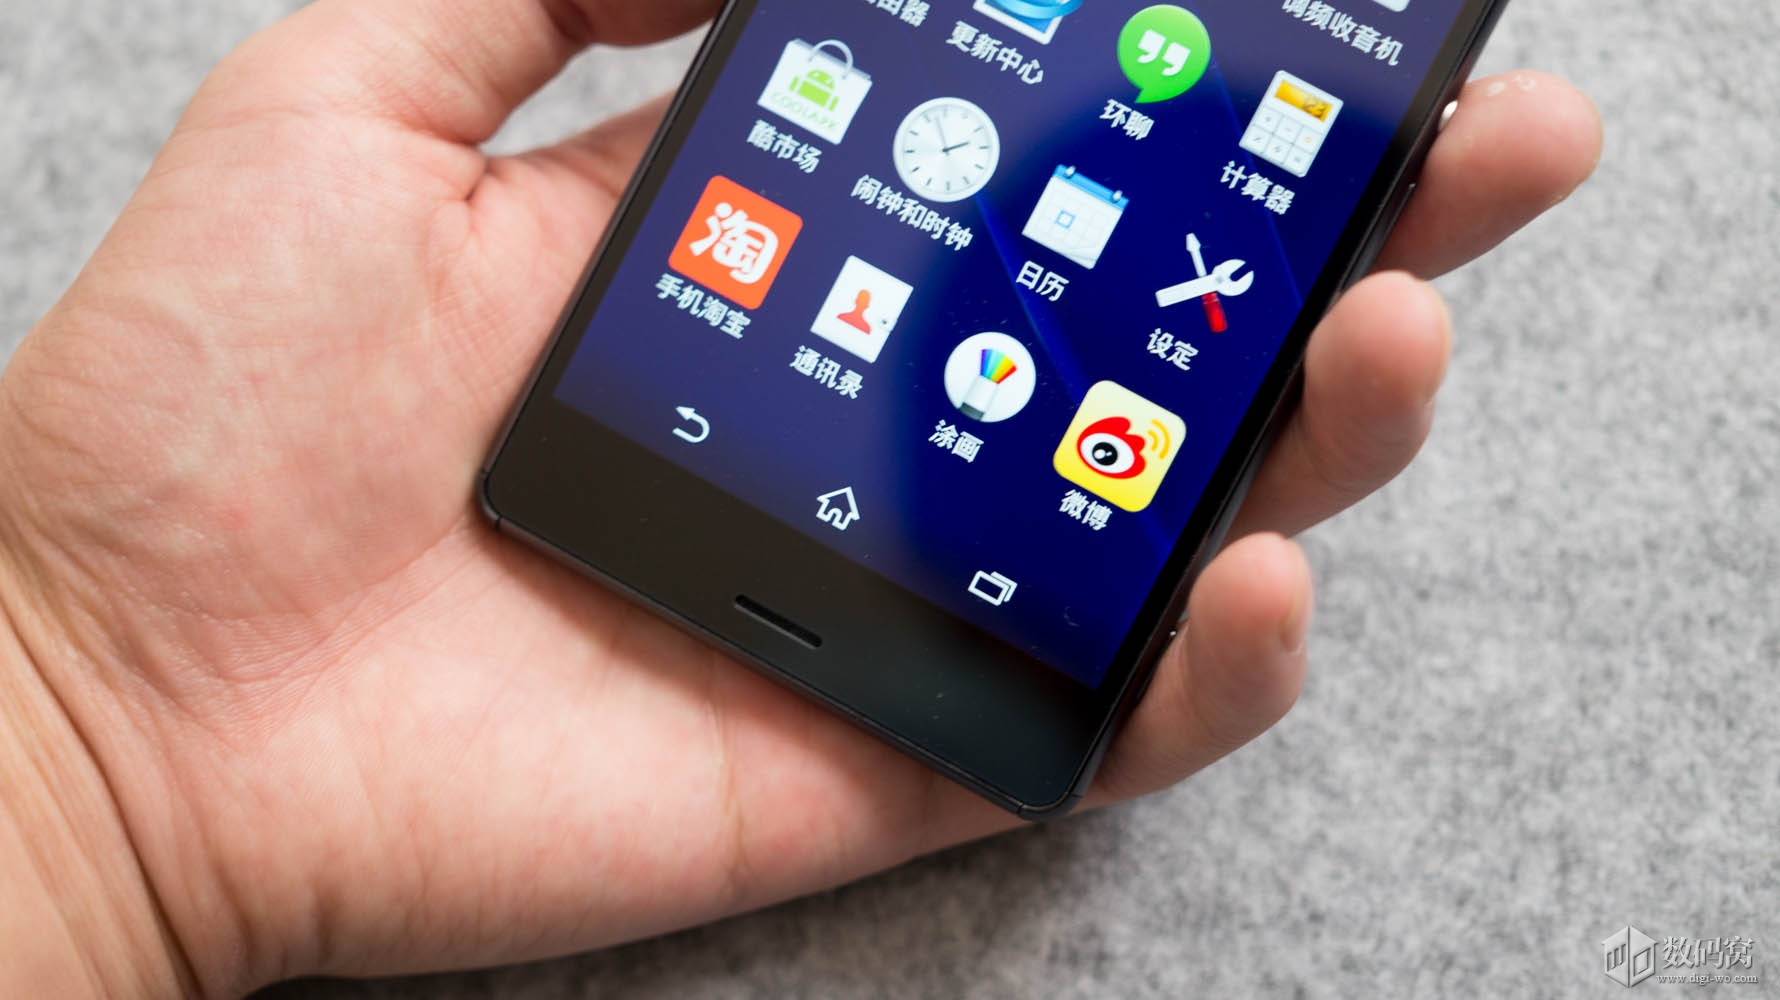 Xperia Z3 Dual hands on